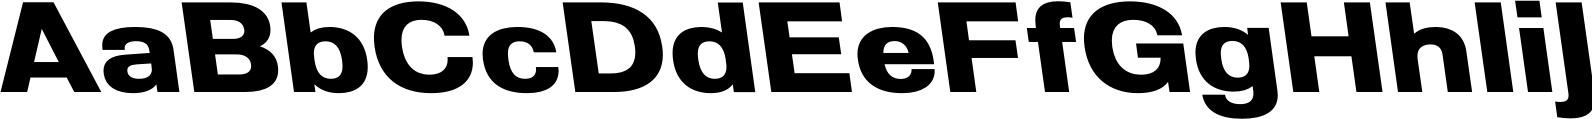 Molde SemiExpanded Bold Reverse Font